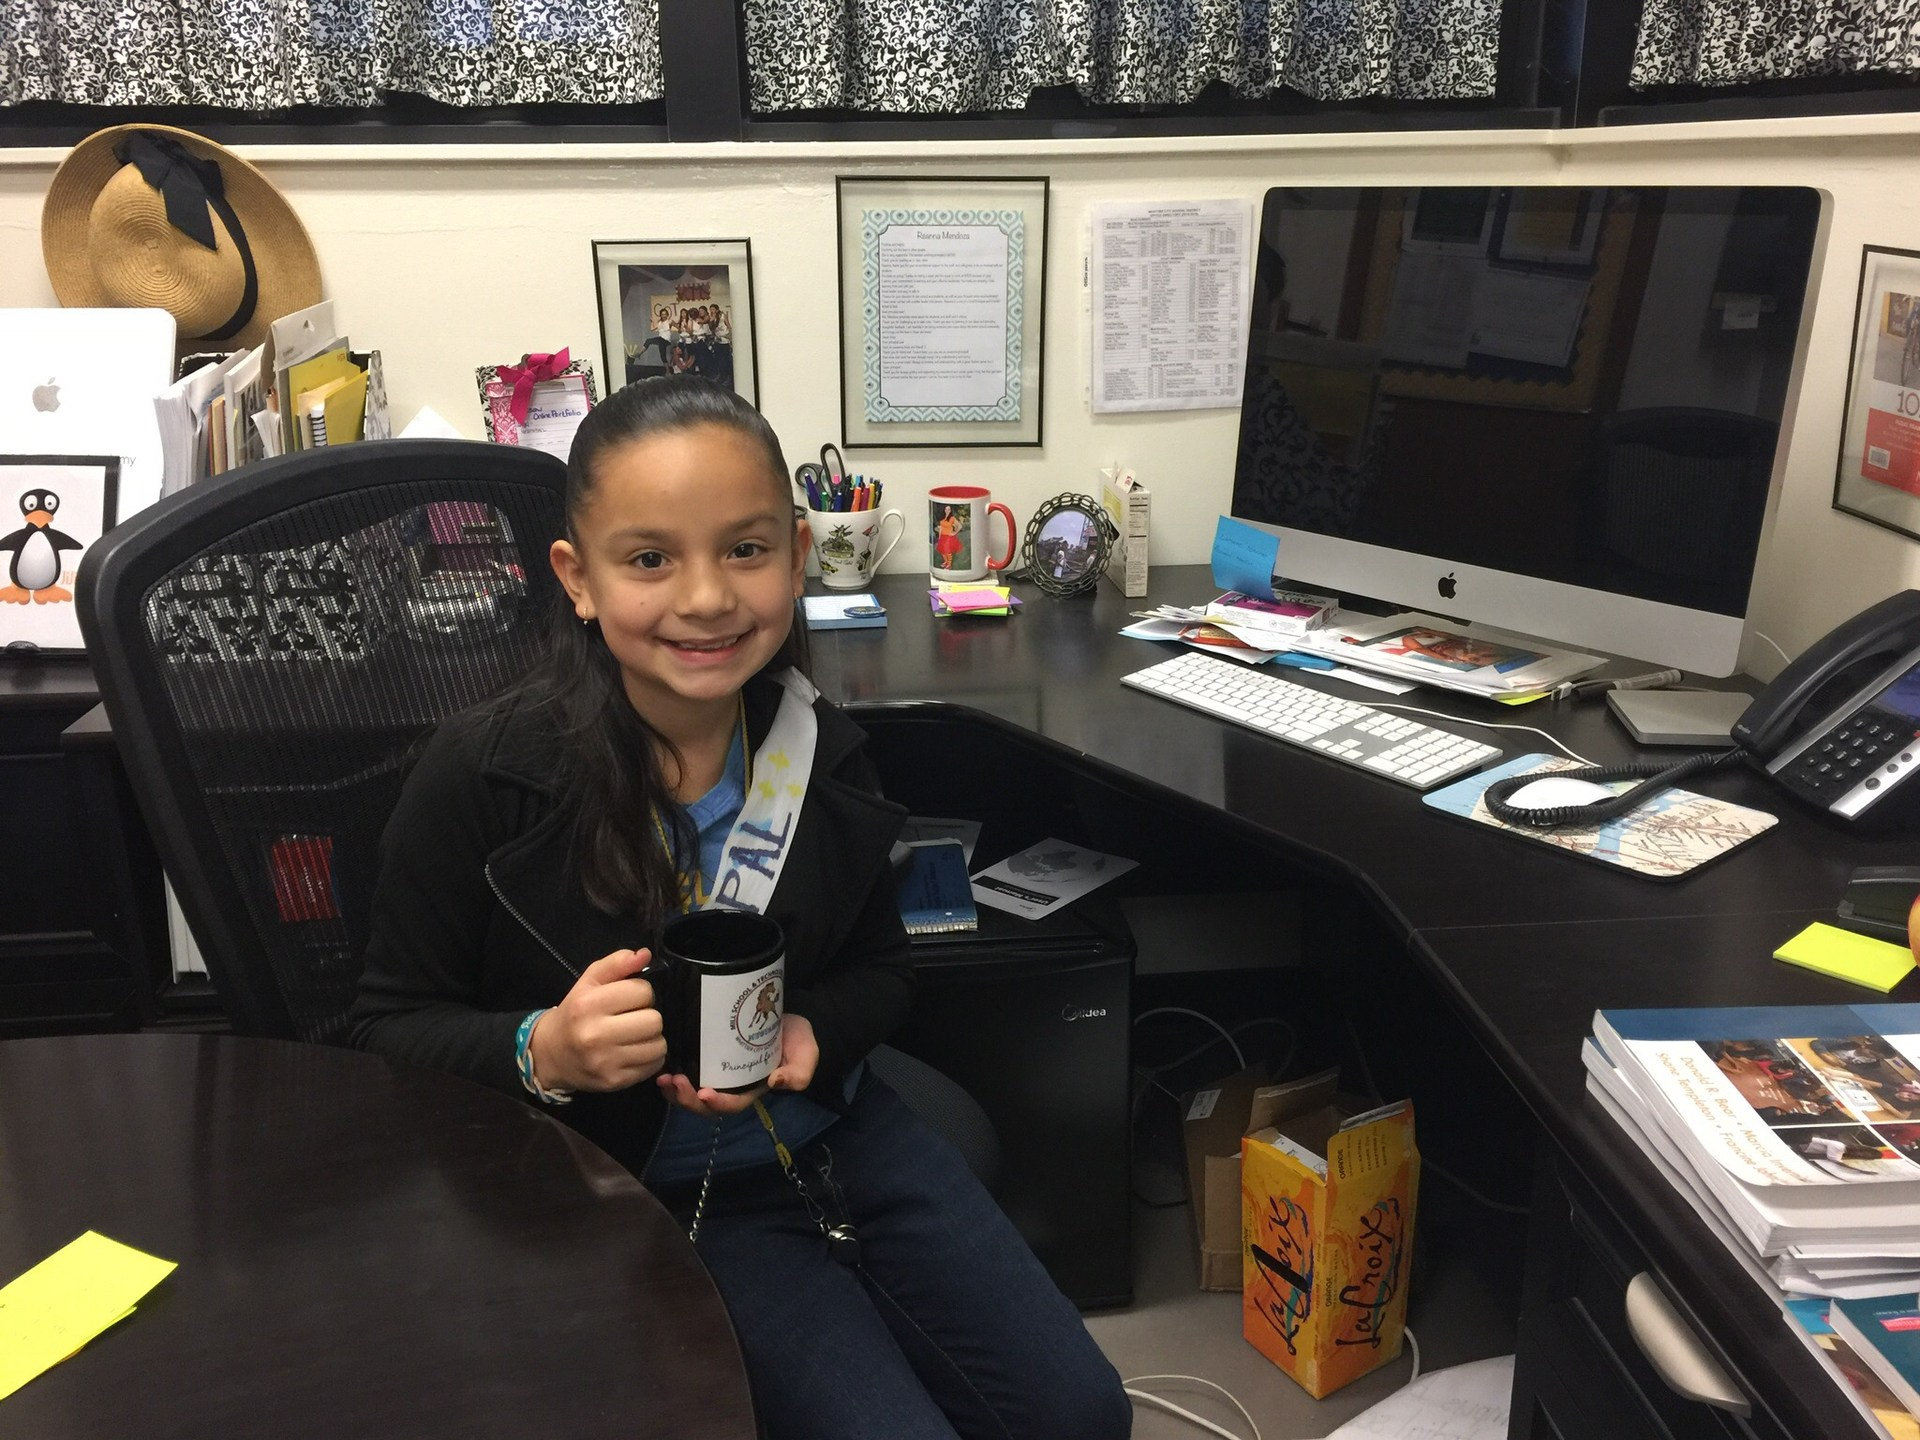 Principal for the day